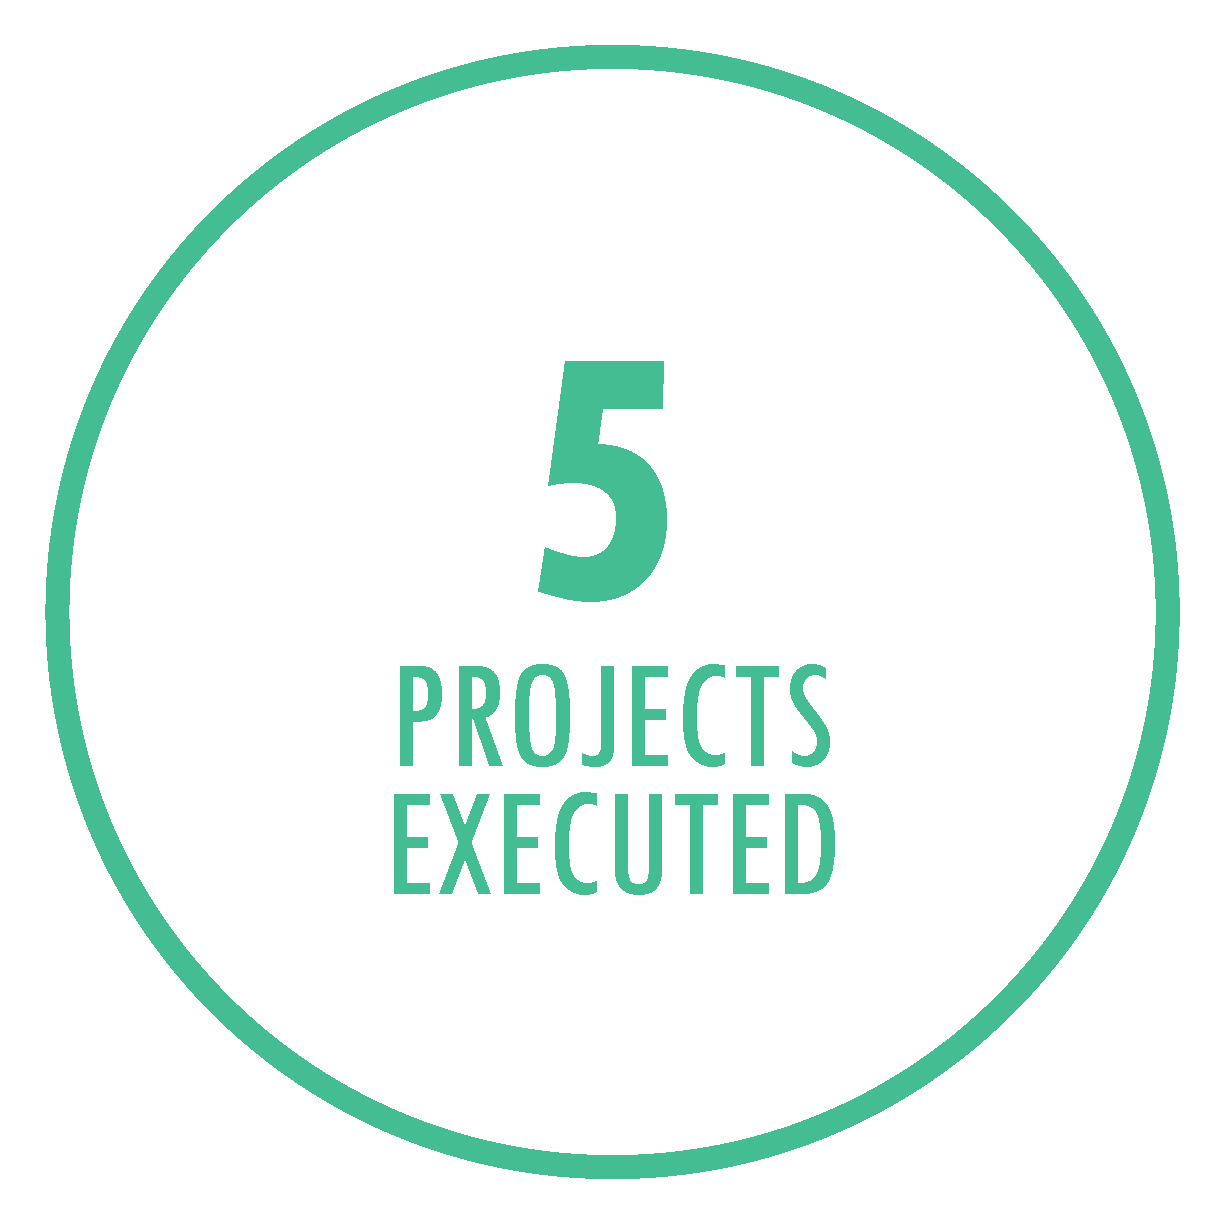 ED-Projects@4x.png